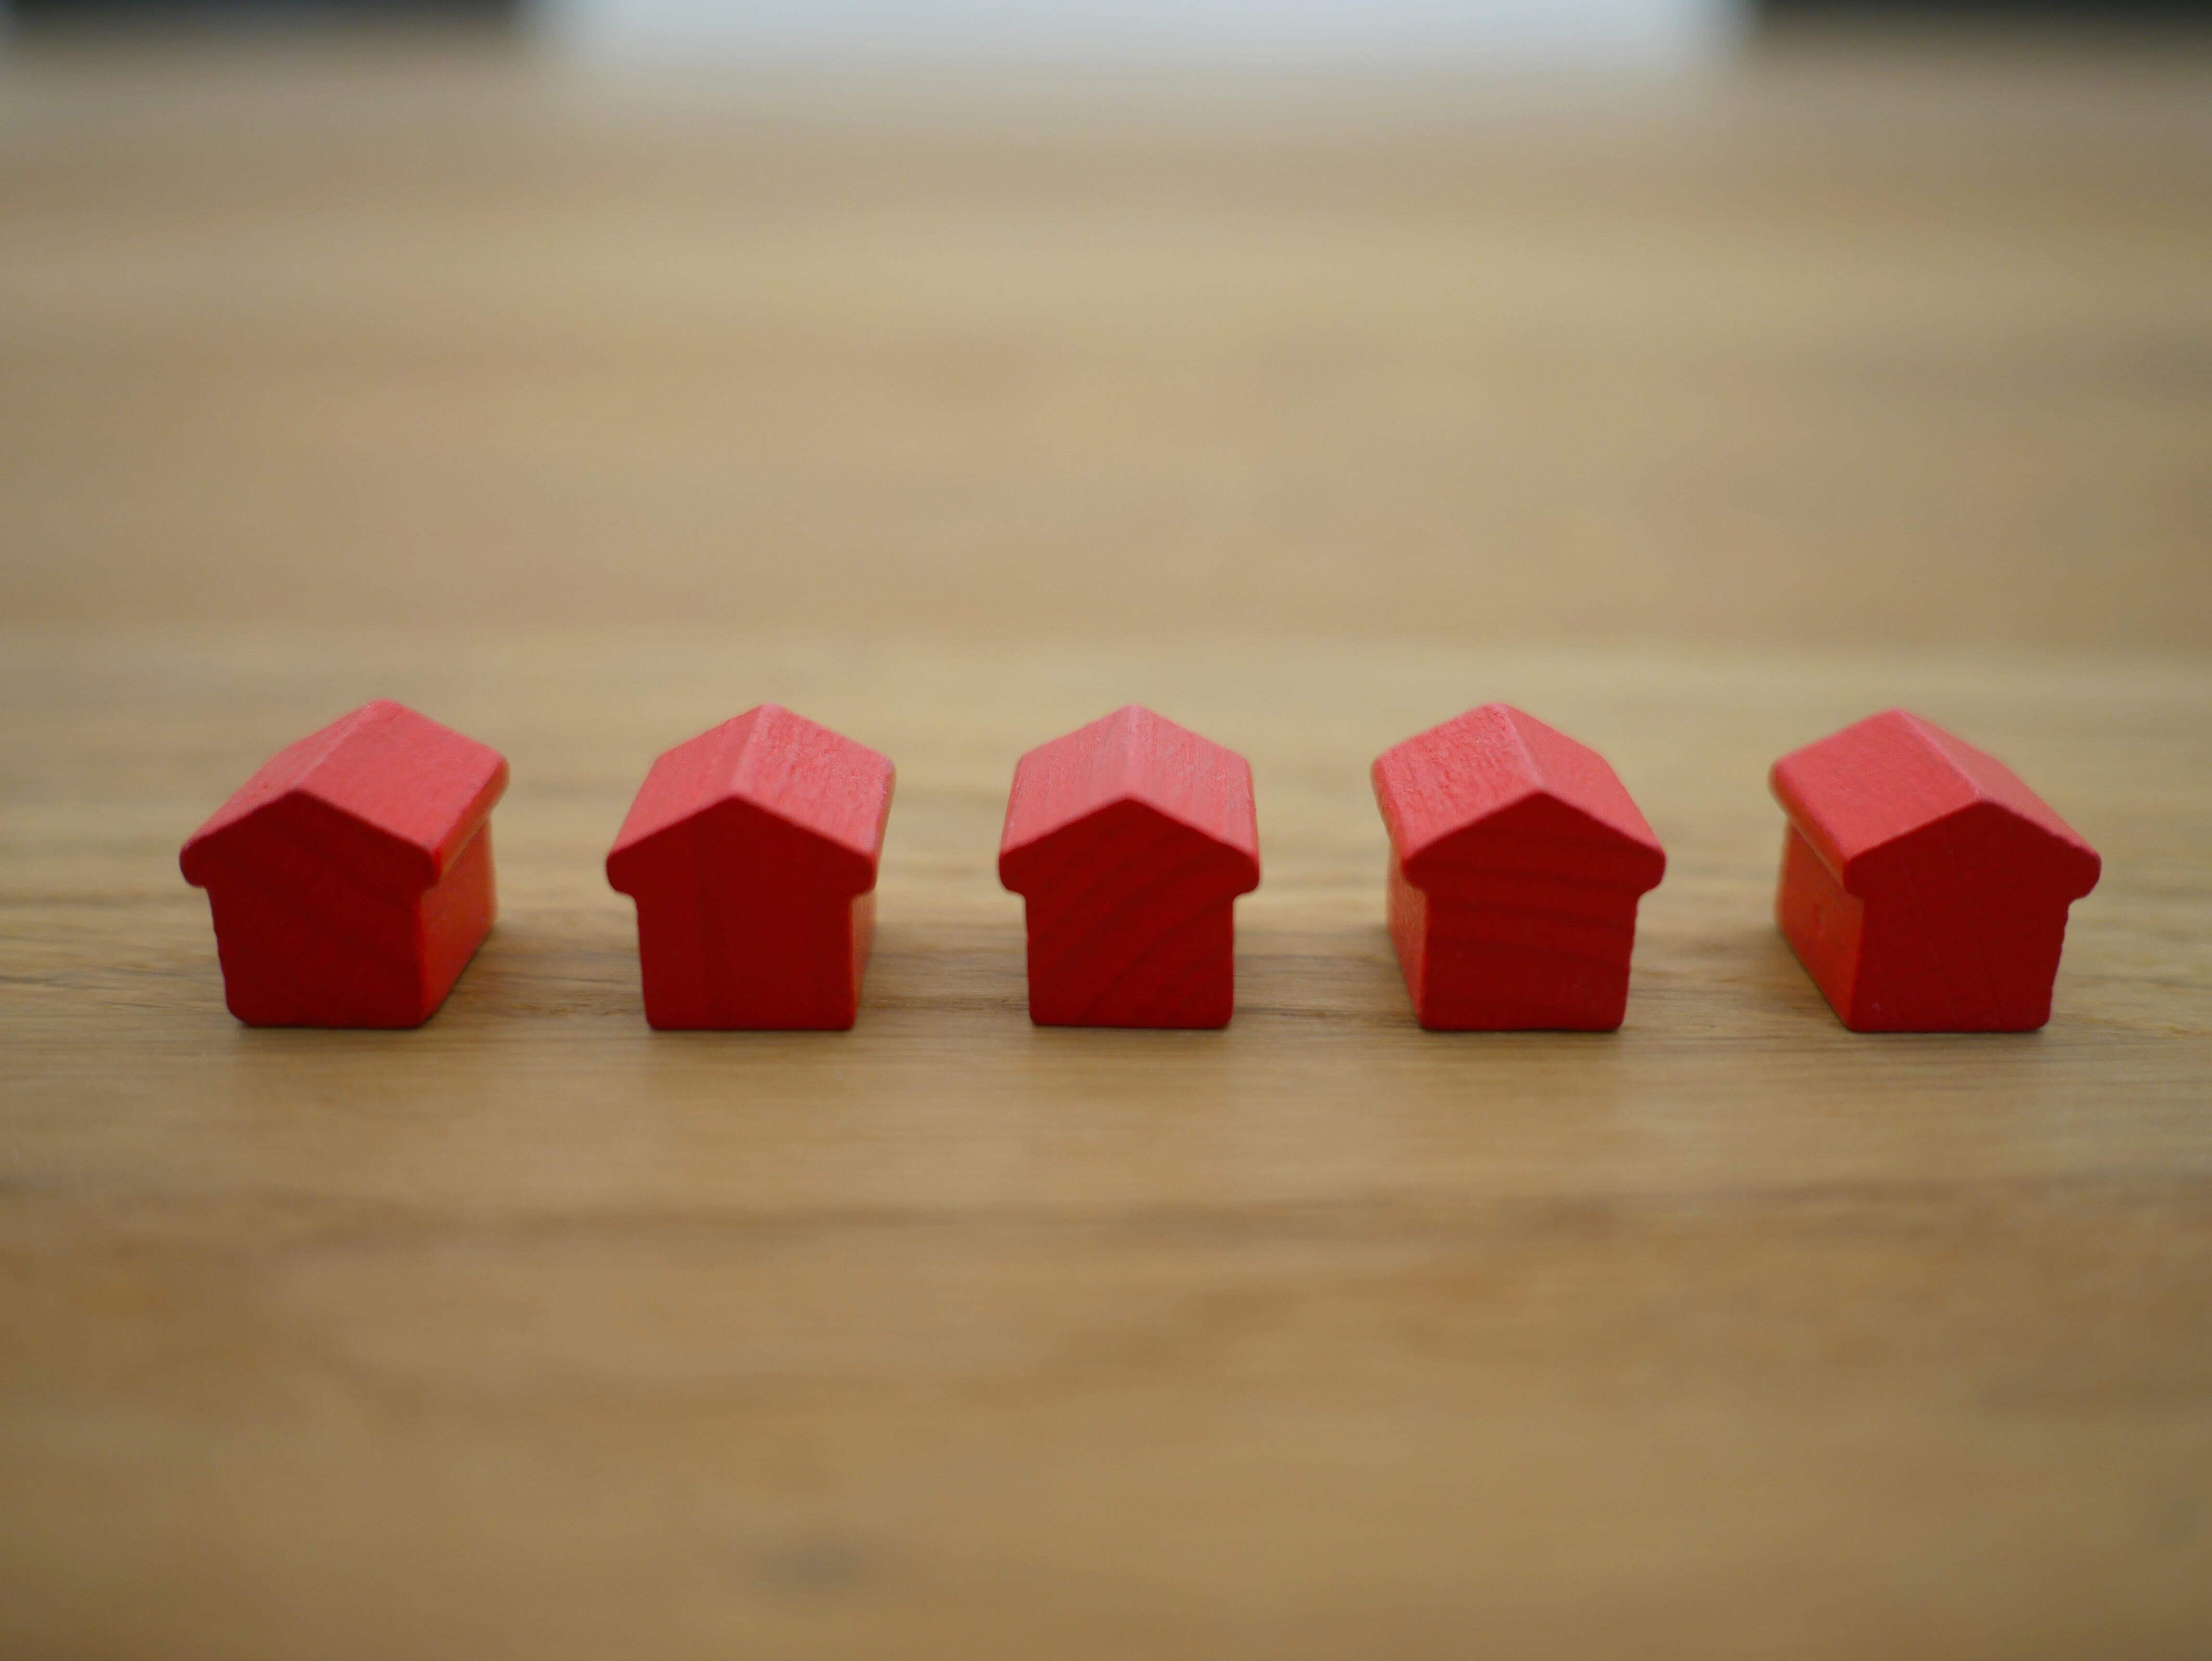 line of 5 red house toys